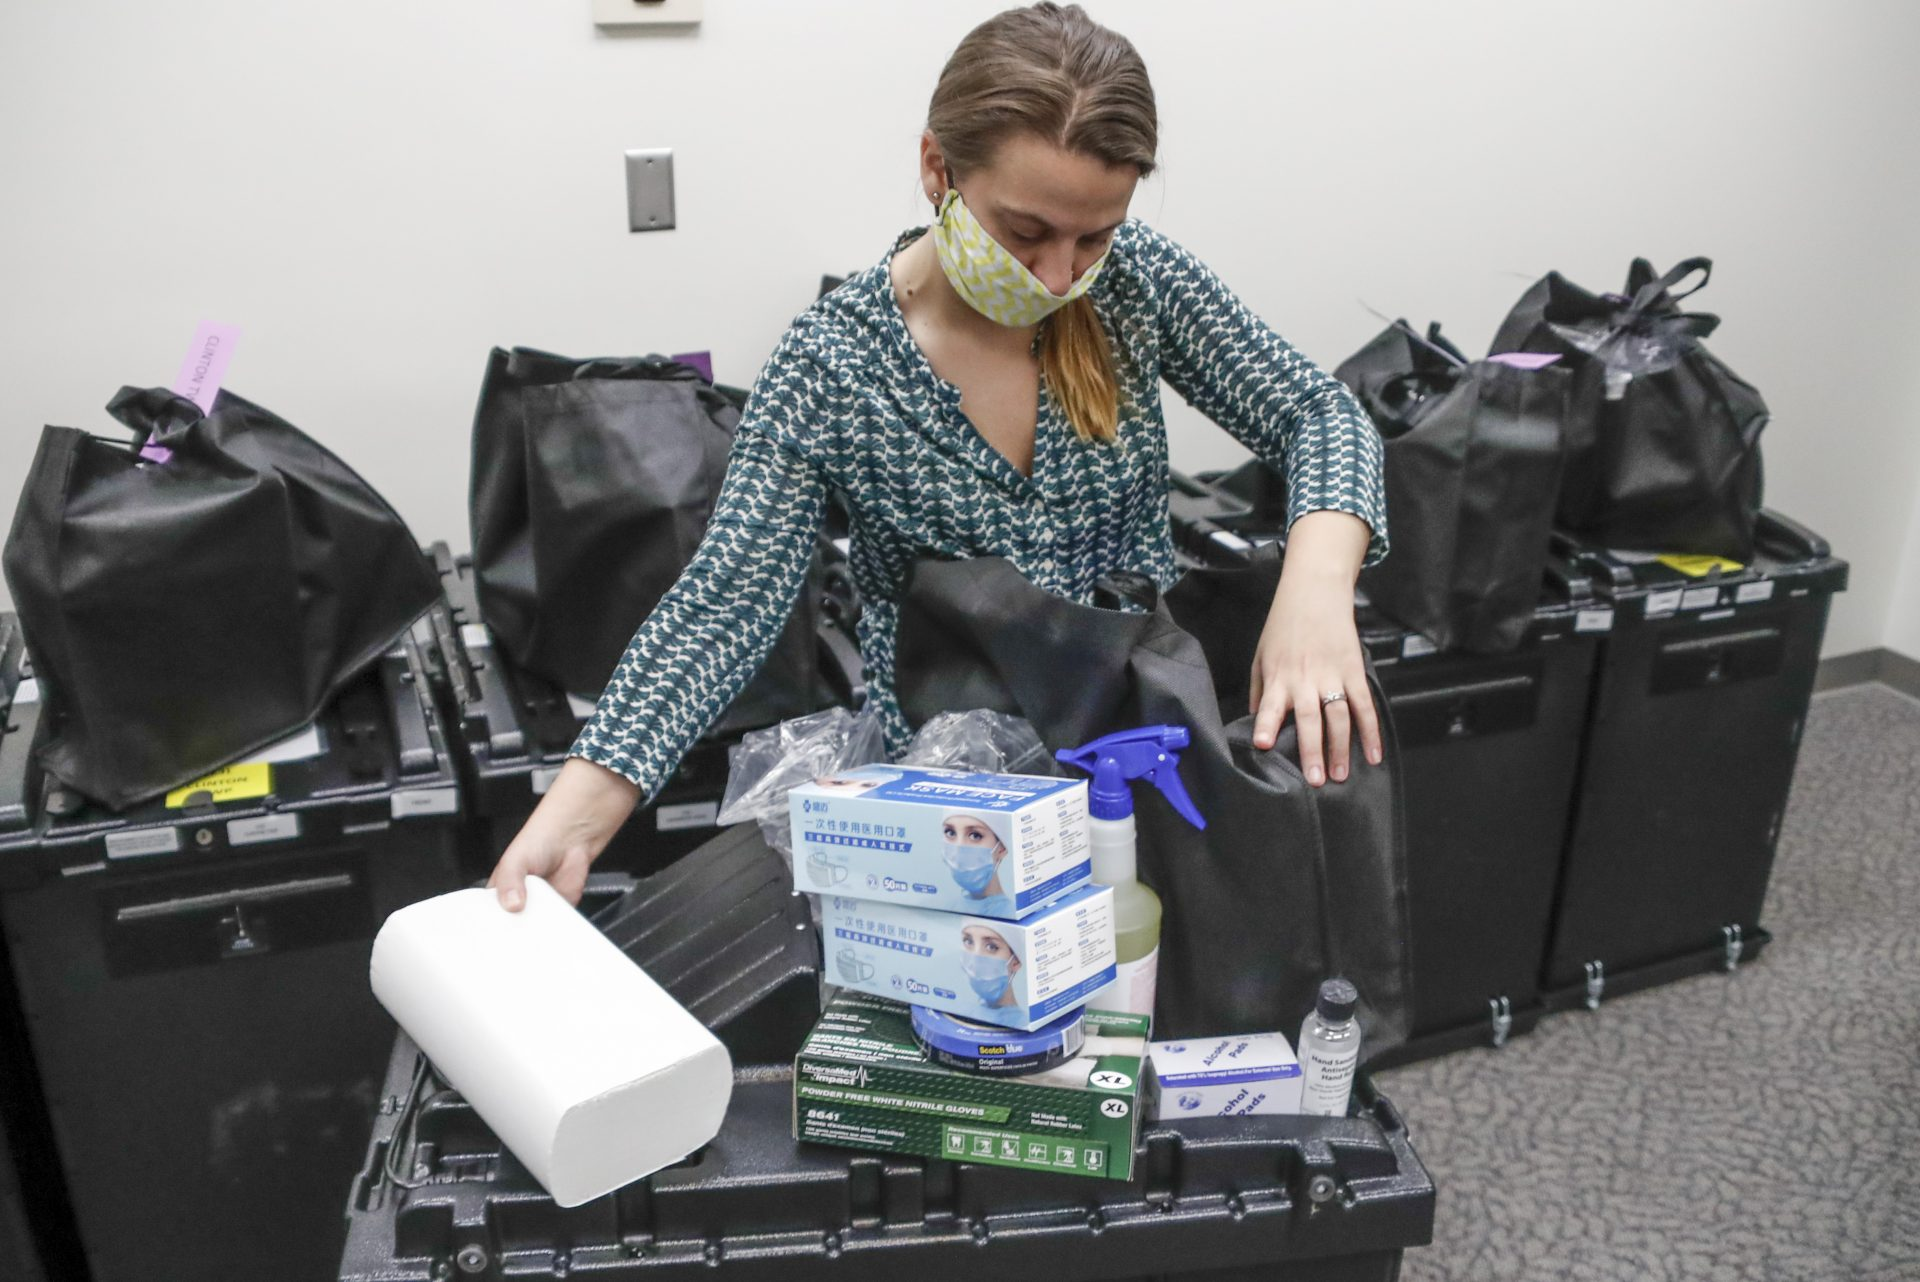 Butler County Bureau of Elections Registrar, Chantell McCurdy packs one of the COVID-19 cleaning and preparedness precinct kits with equipment as protective masks, gloves, hand sanitizers, wipes and sprays for sanitizing, for poll workers for Pennsylvania's June 2nd Primary election before they are sent out from the offices Thursday, May 28, 2020, in Butler, Pa.